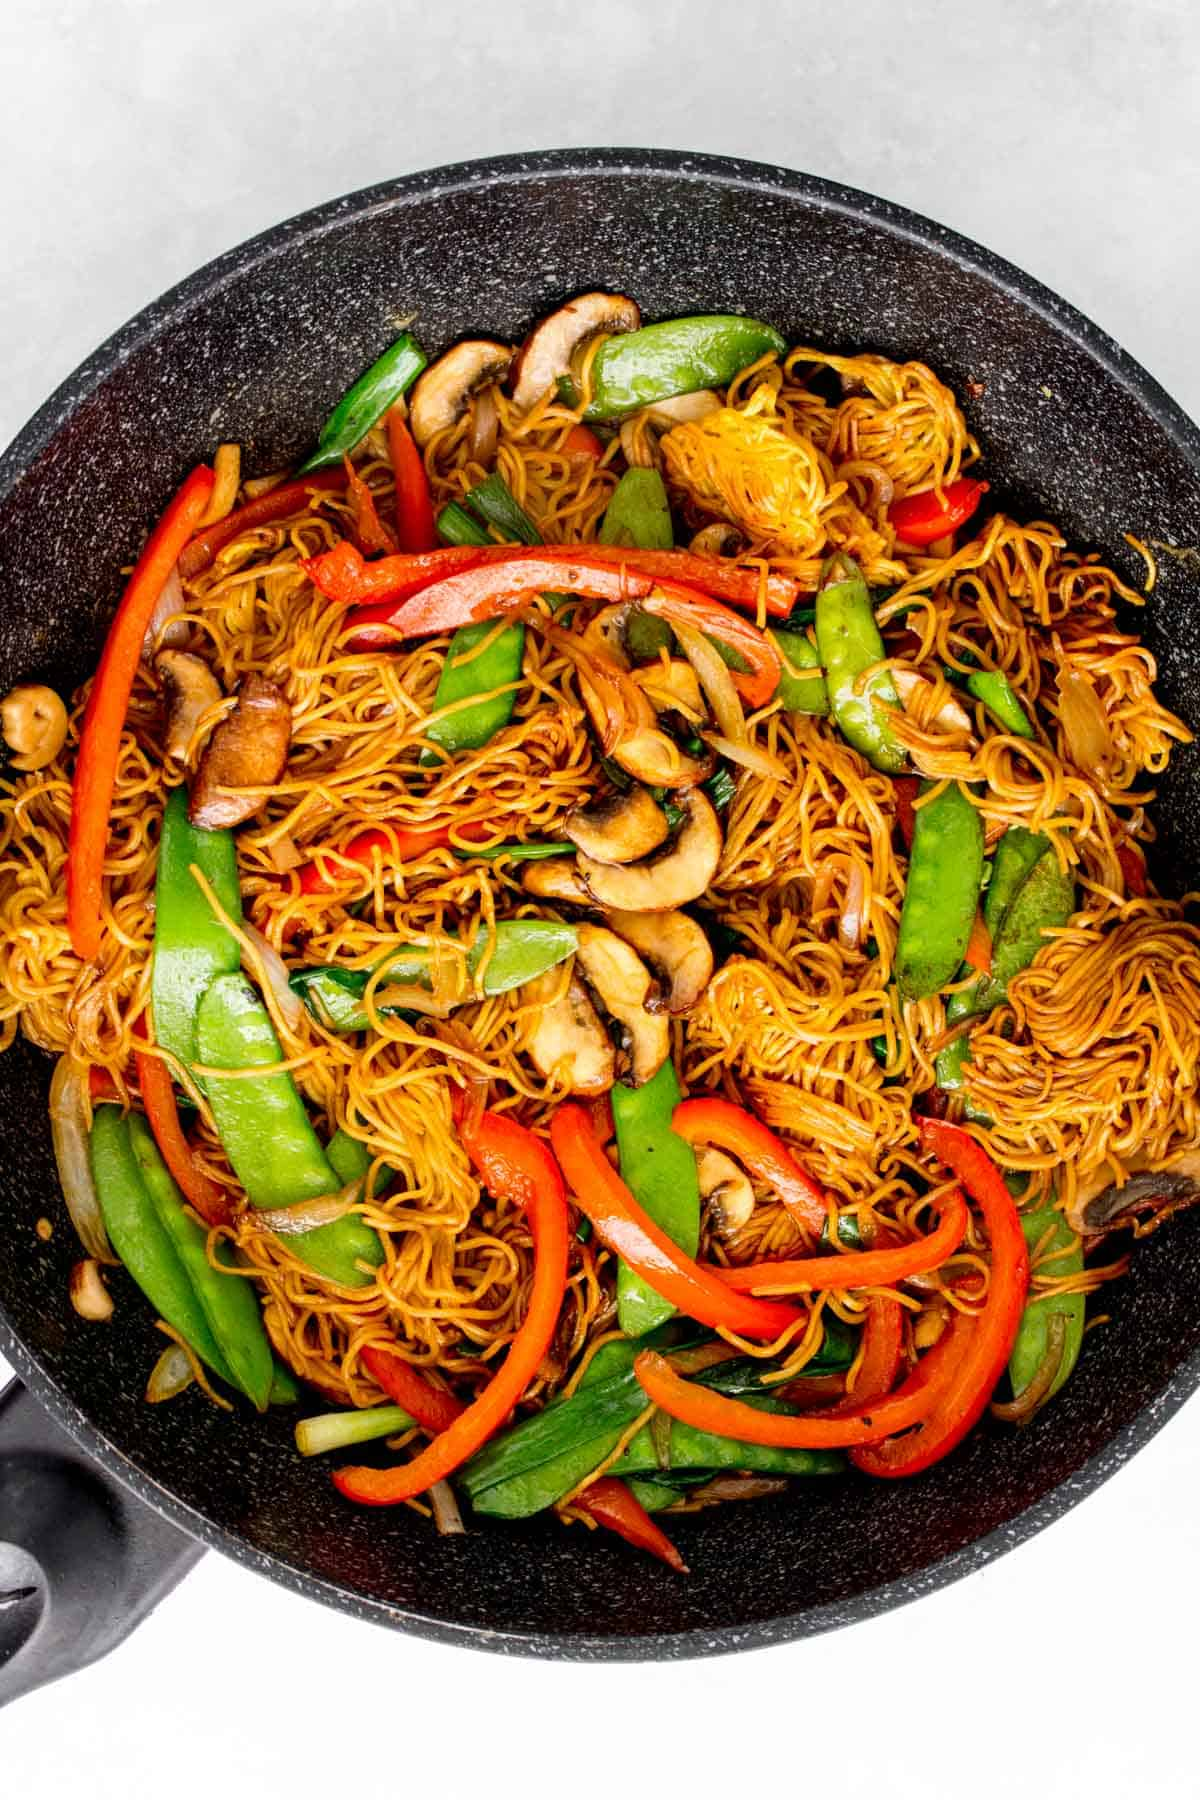 Soy sauce pan fried noodles with vegetables in a pan.